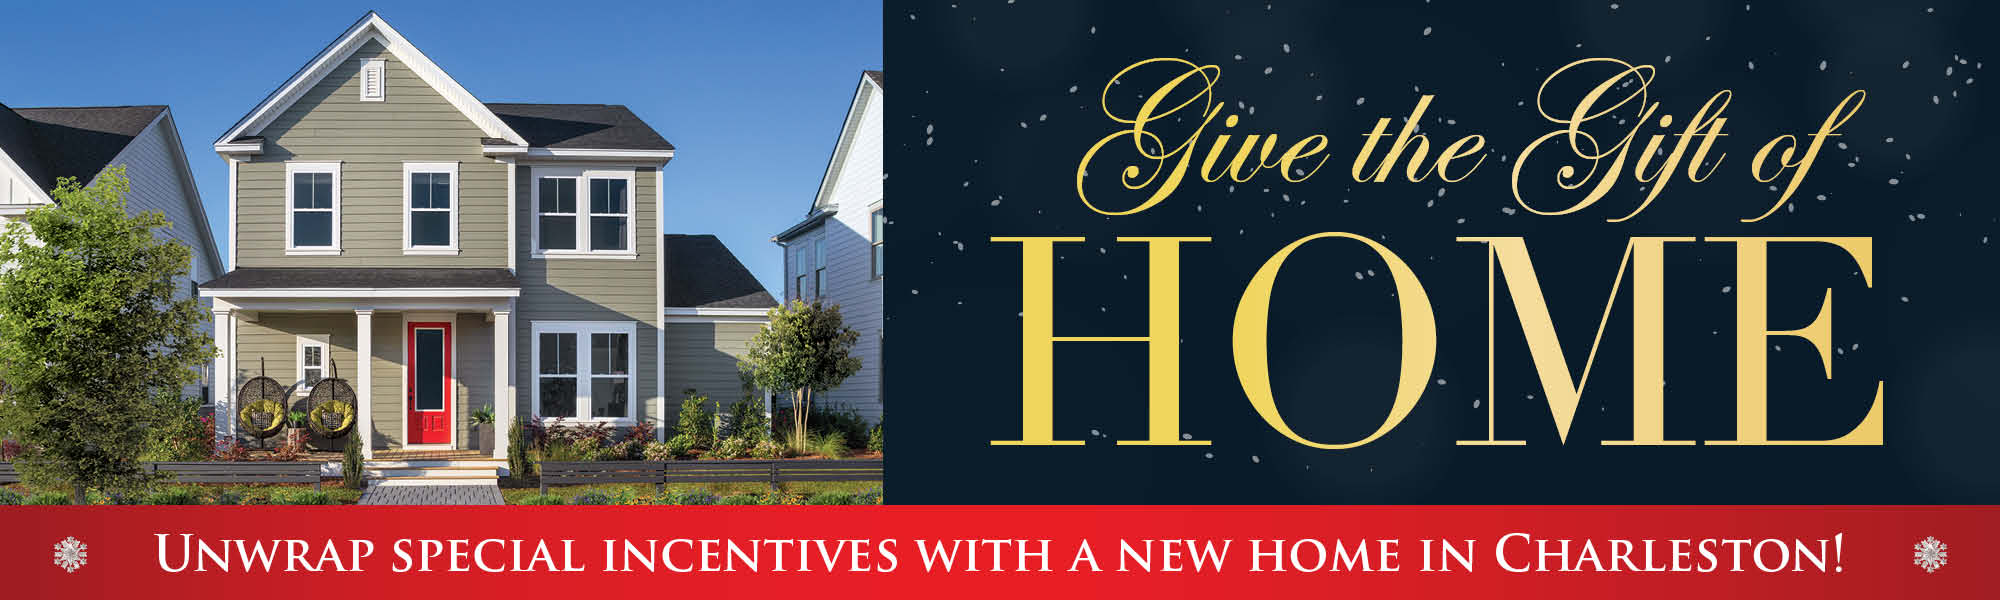 Give the Gift of Home in Charleston